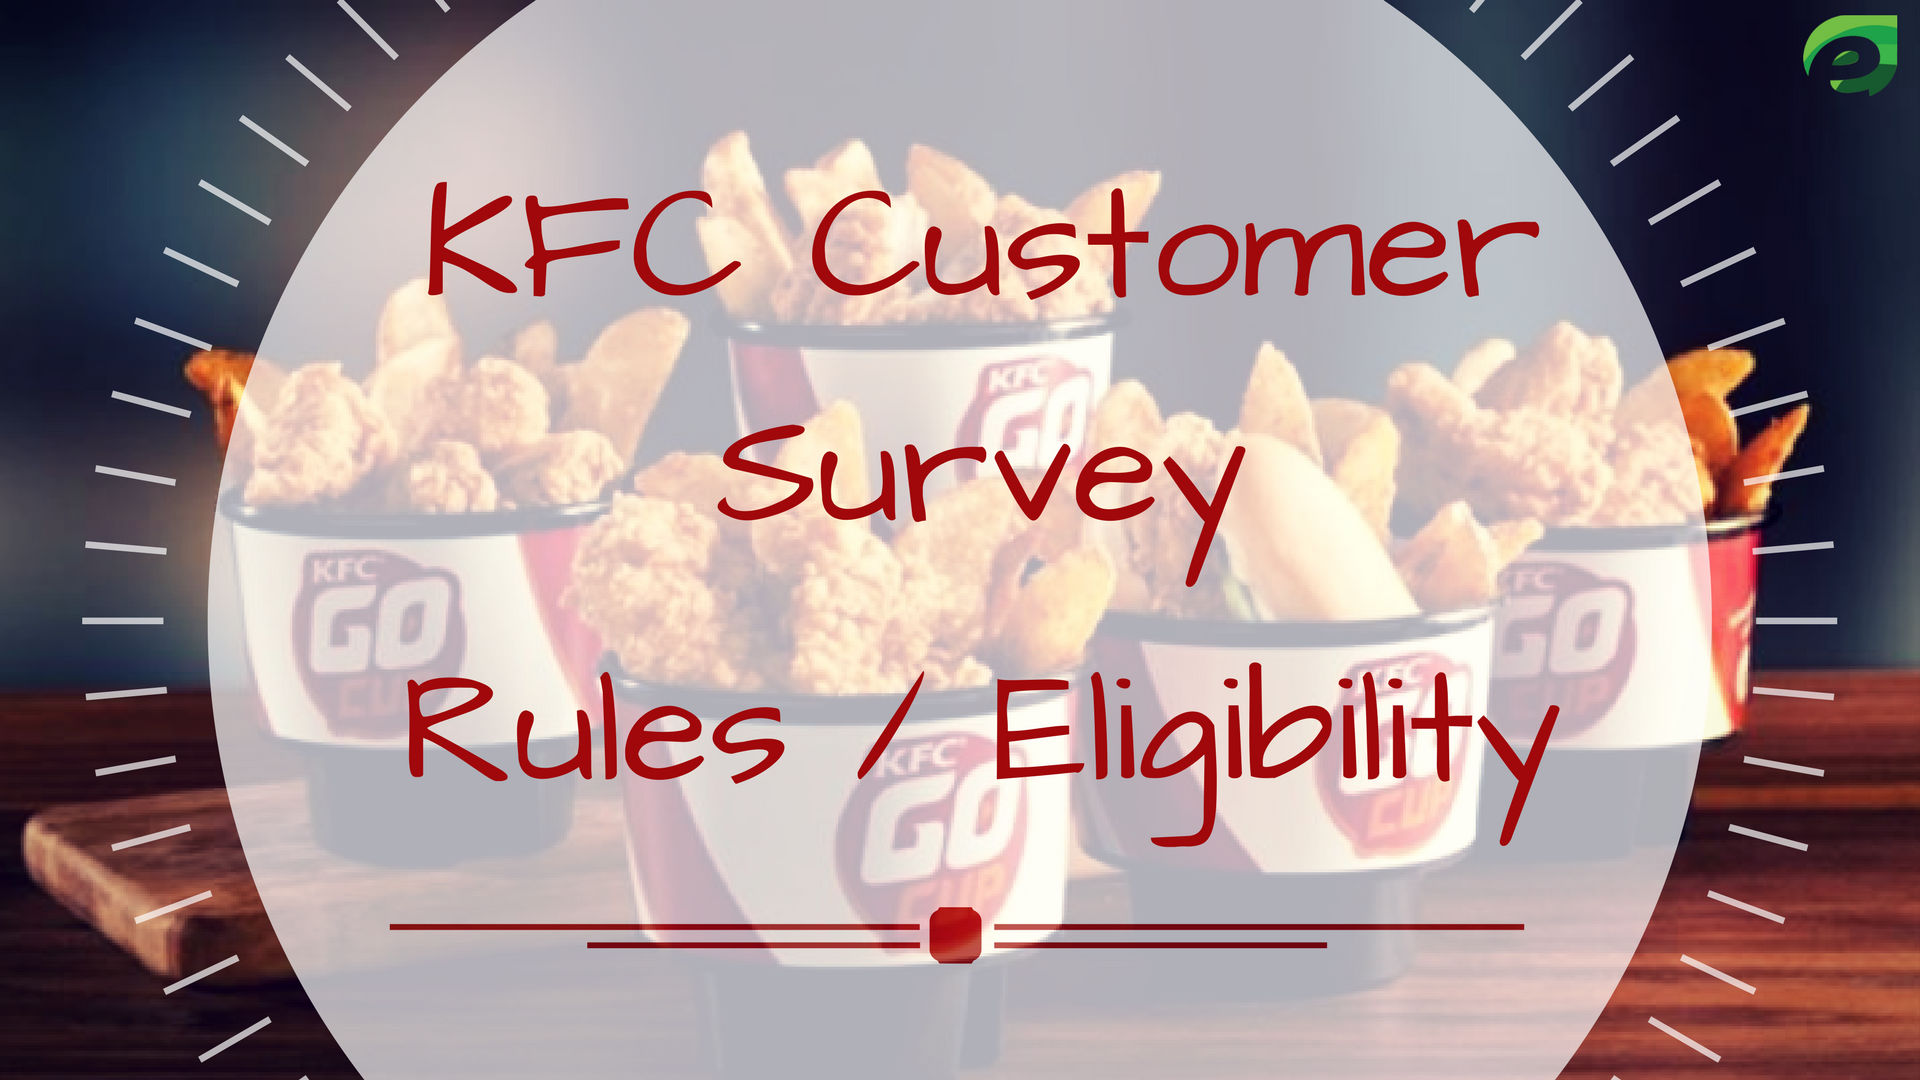 mykfcexperience - rules/eligibility